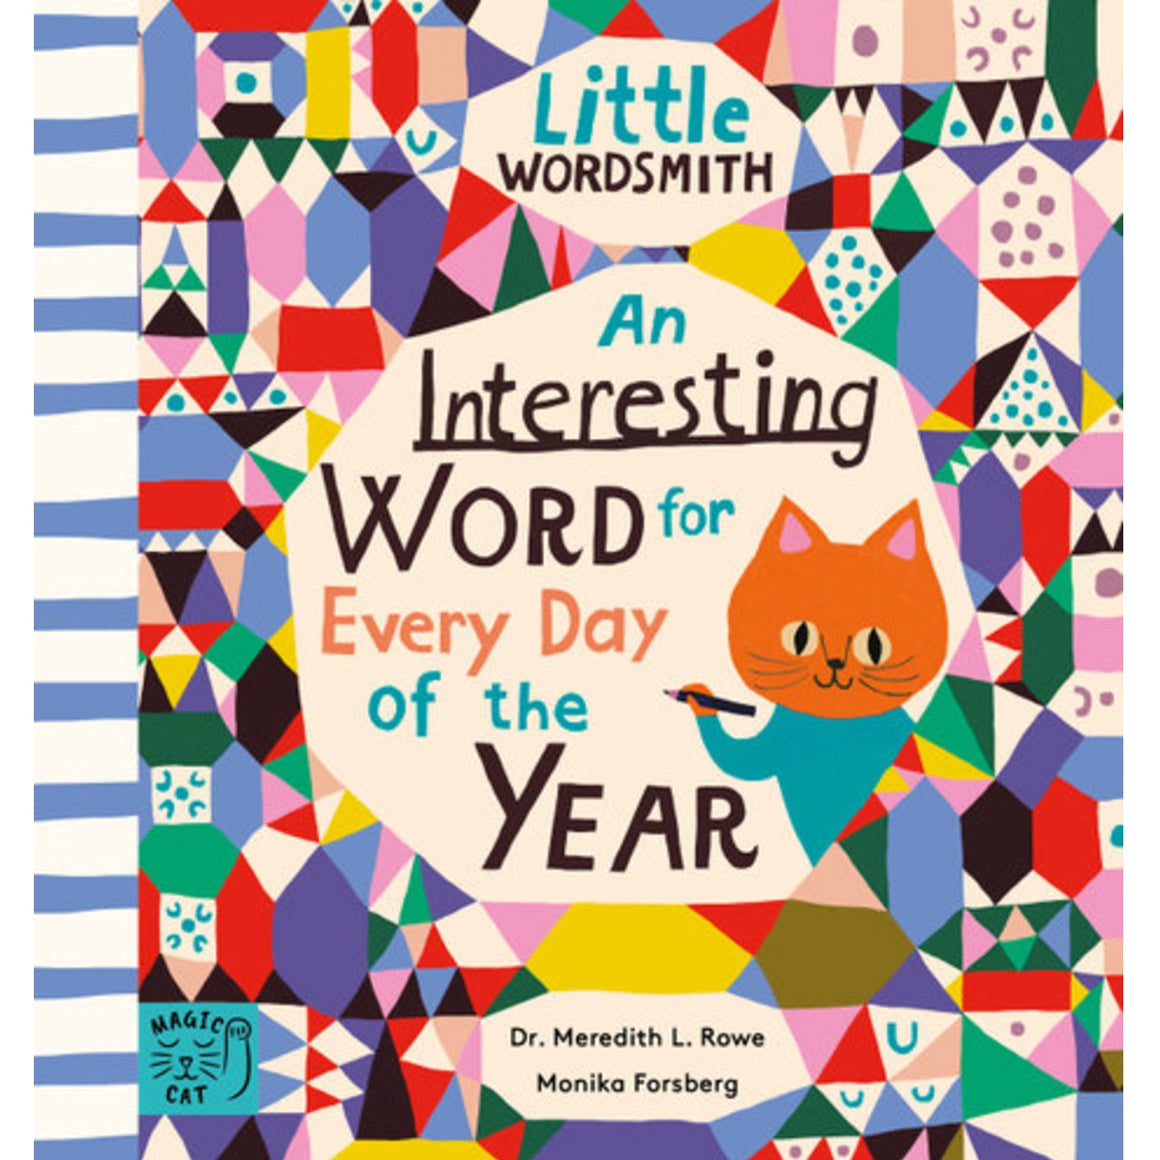 Image featuring a bright and colourful book cover, with a pattern that has been made to look like a bed quilt with a shape in the center which features a graphic illustration of a cat and the words An interesting word for every day of the year